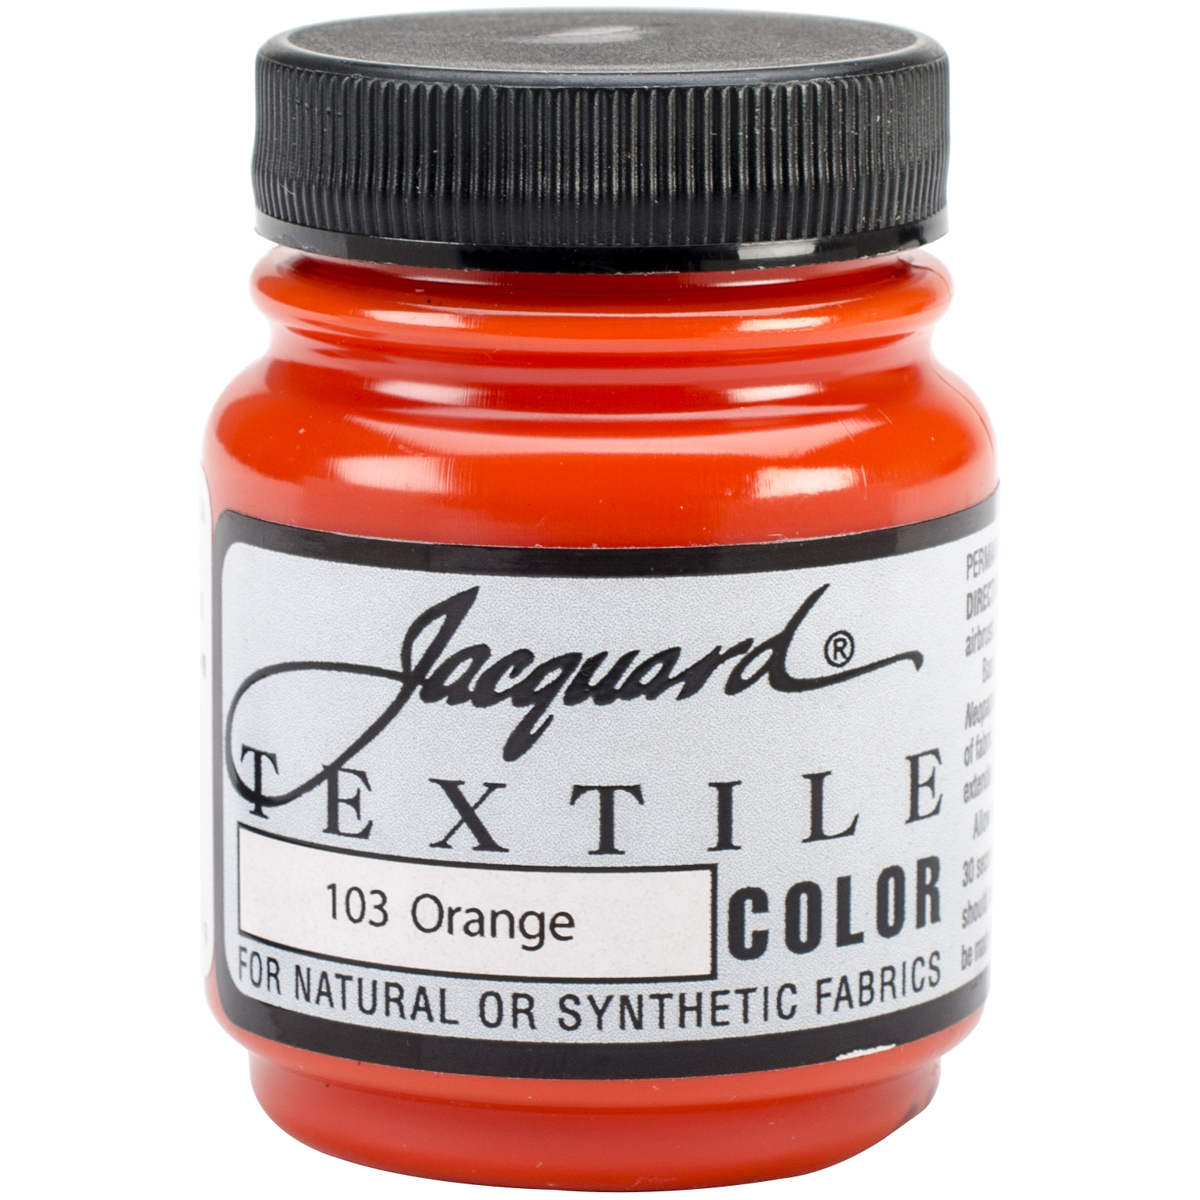 Jacquard Textile Color Fabric Paint 2.25oz-Orange